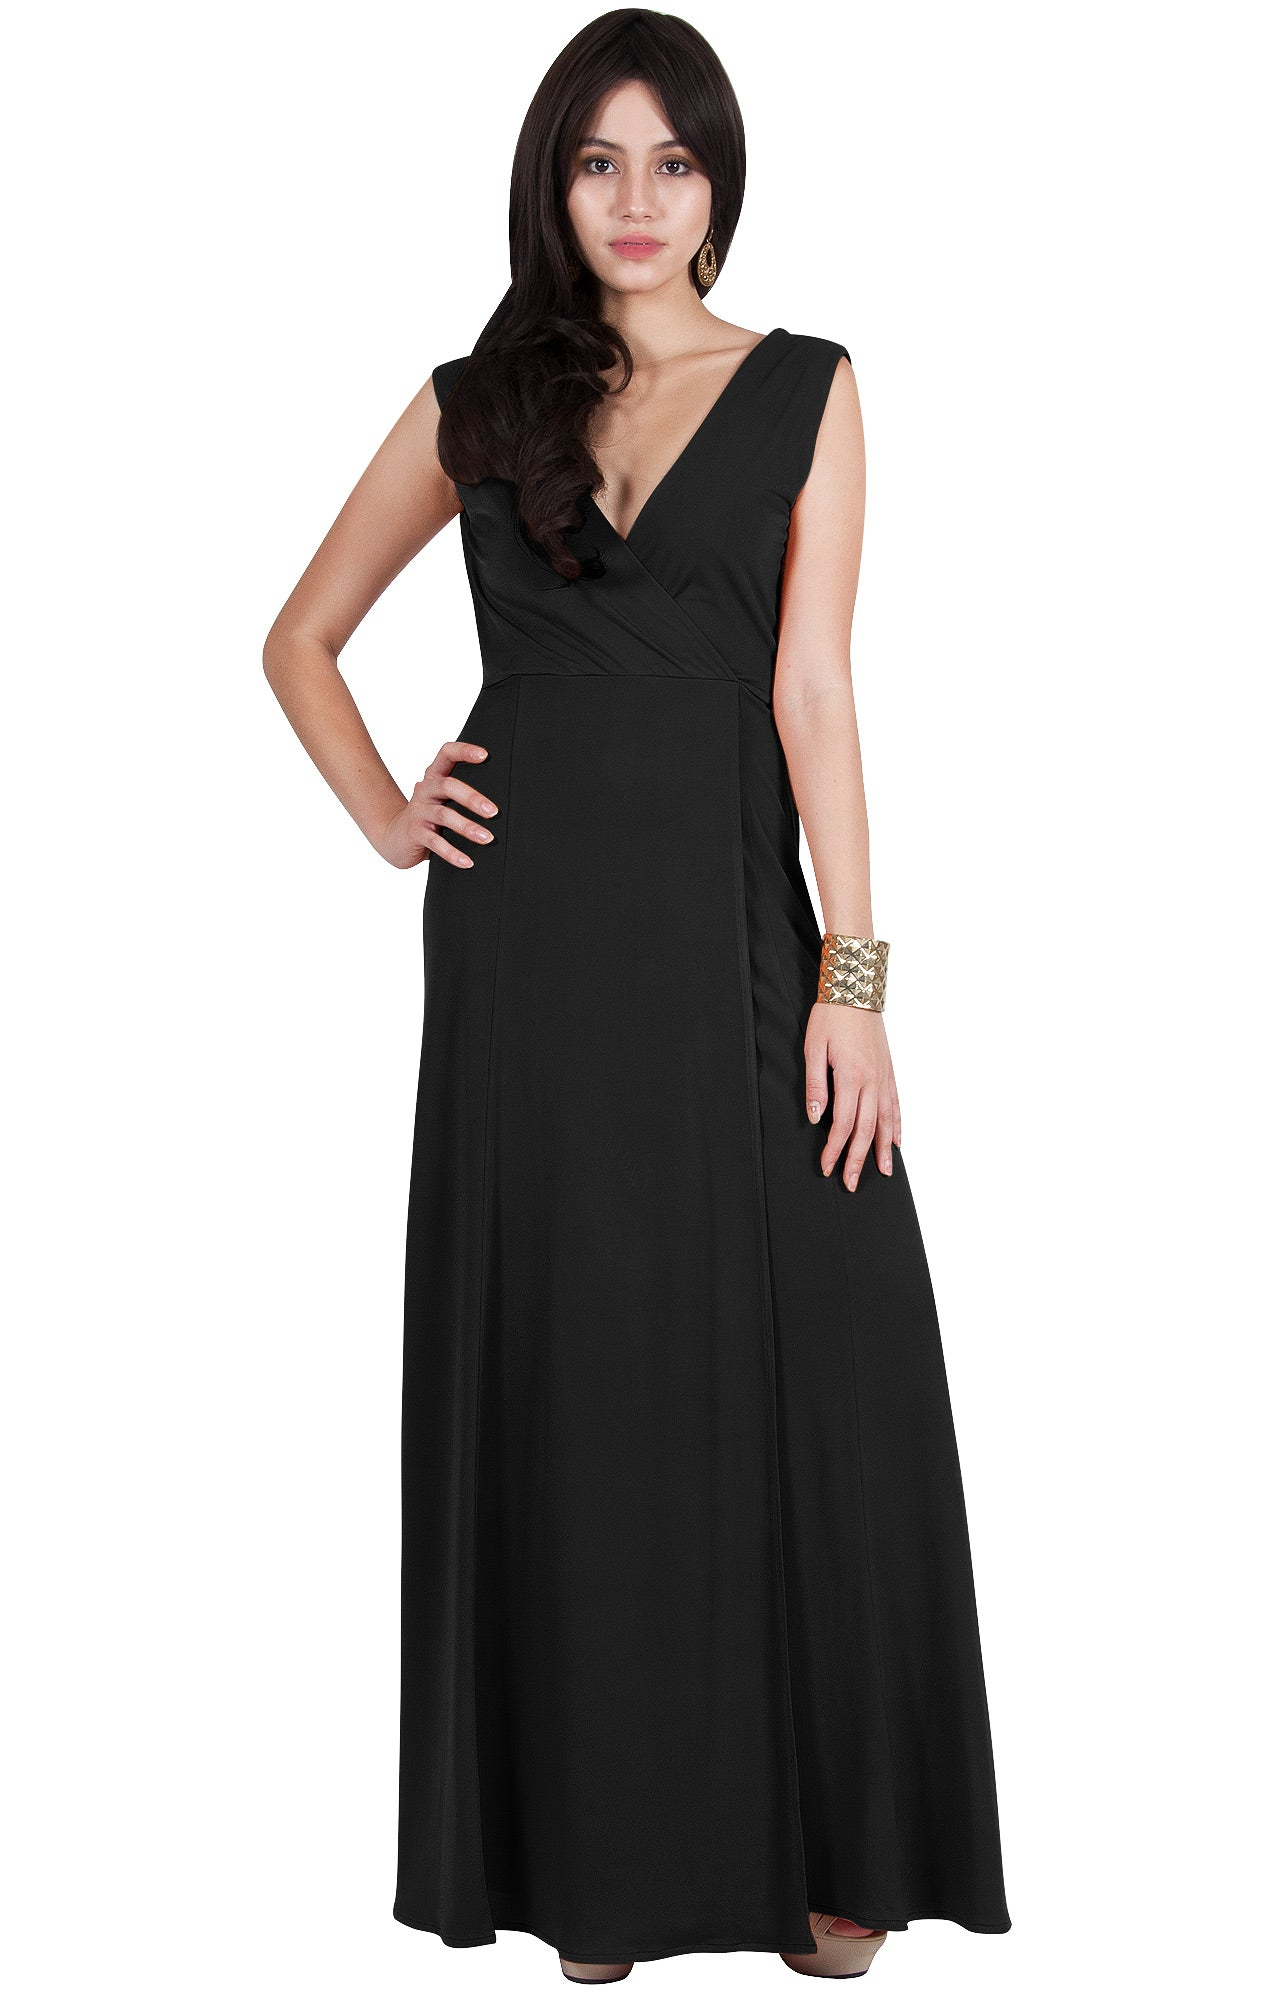 e97934827b2 Dressy Evening Maxi Dress Wedding Guest Vneck Formal. VZ92266   Maxi Dresses